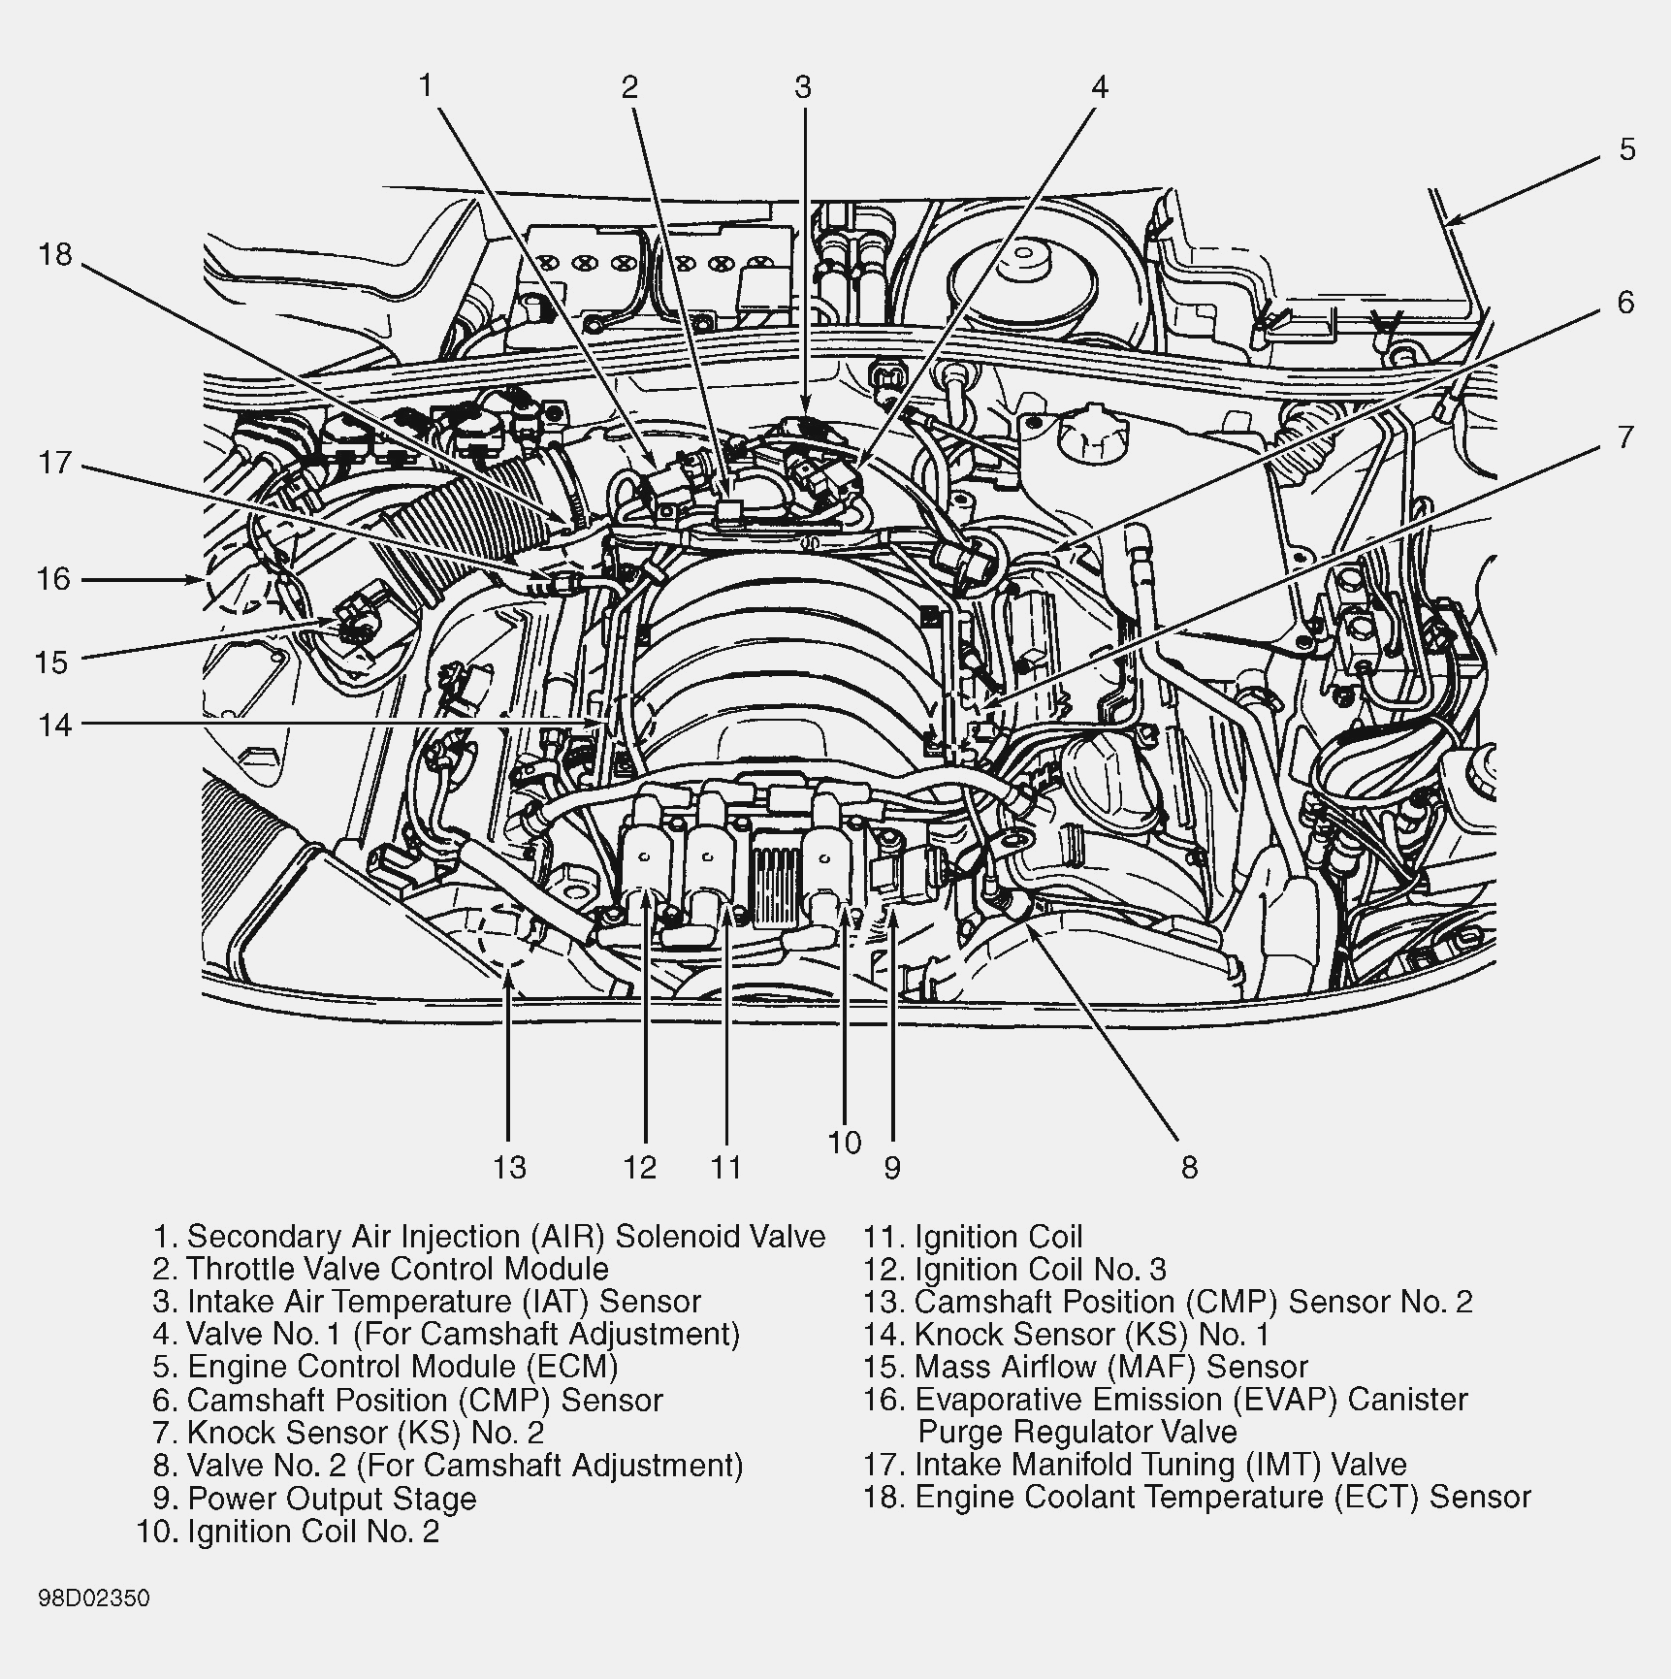 Wiring Diagram For Audi A4 Towbar Diagram Diagramtemplate Diagramsample Jetta A2 Dodge Neon Autos